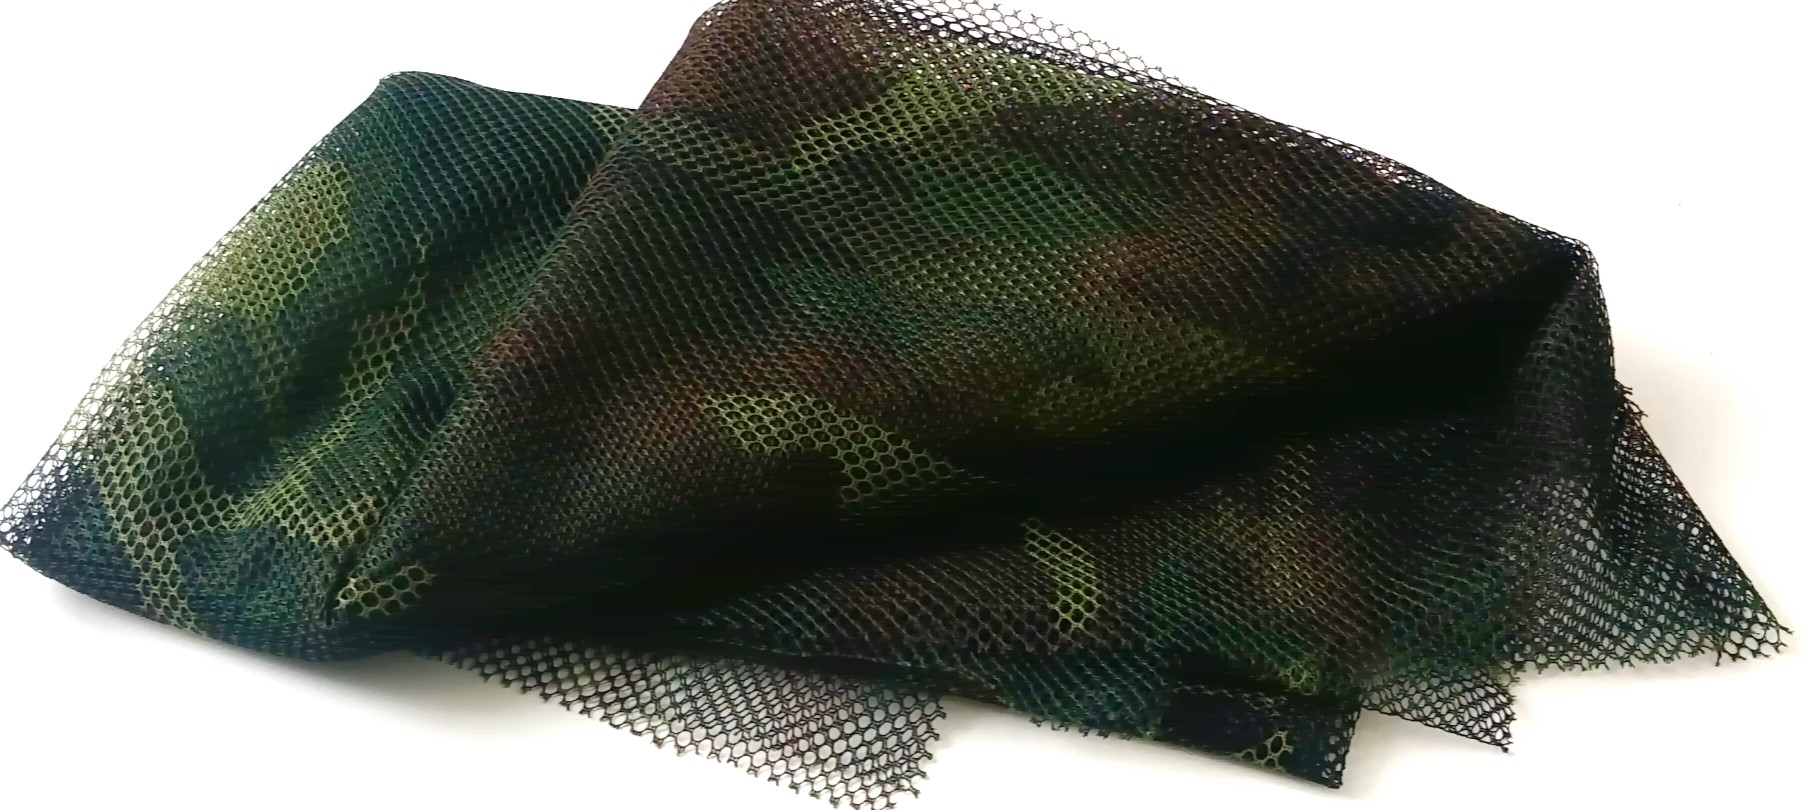 U.S. sniper camouflage netting